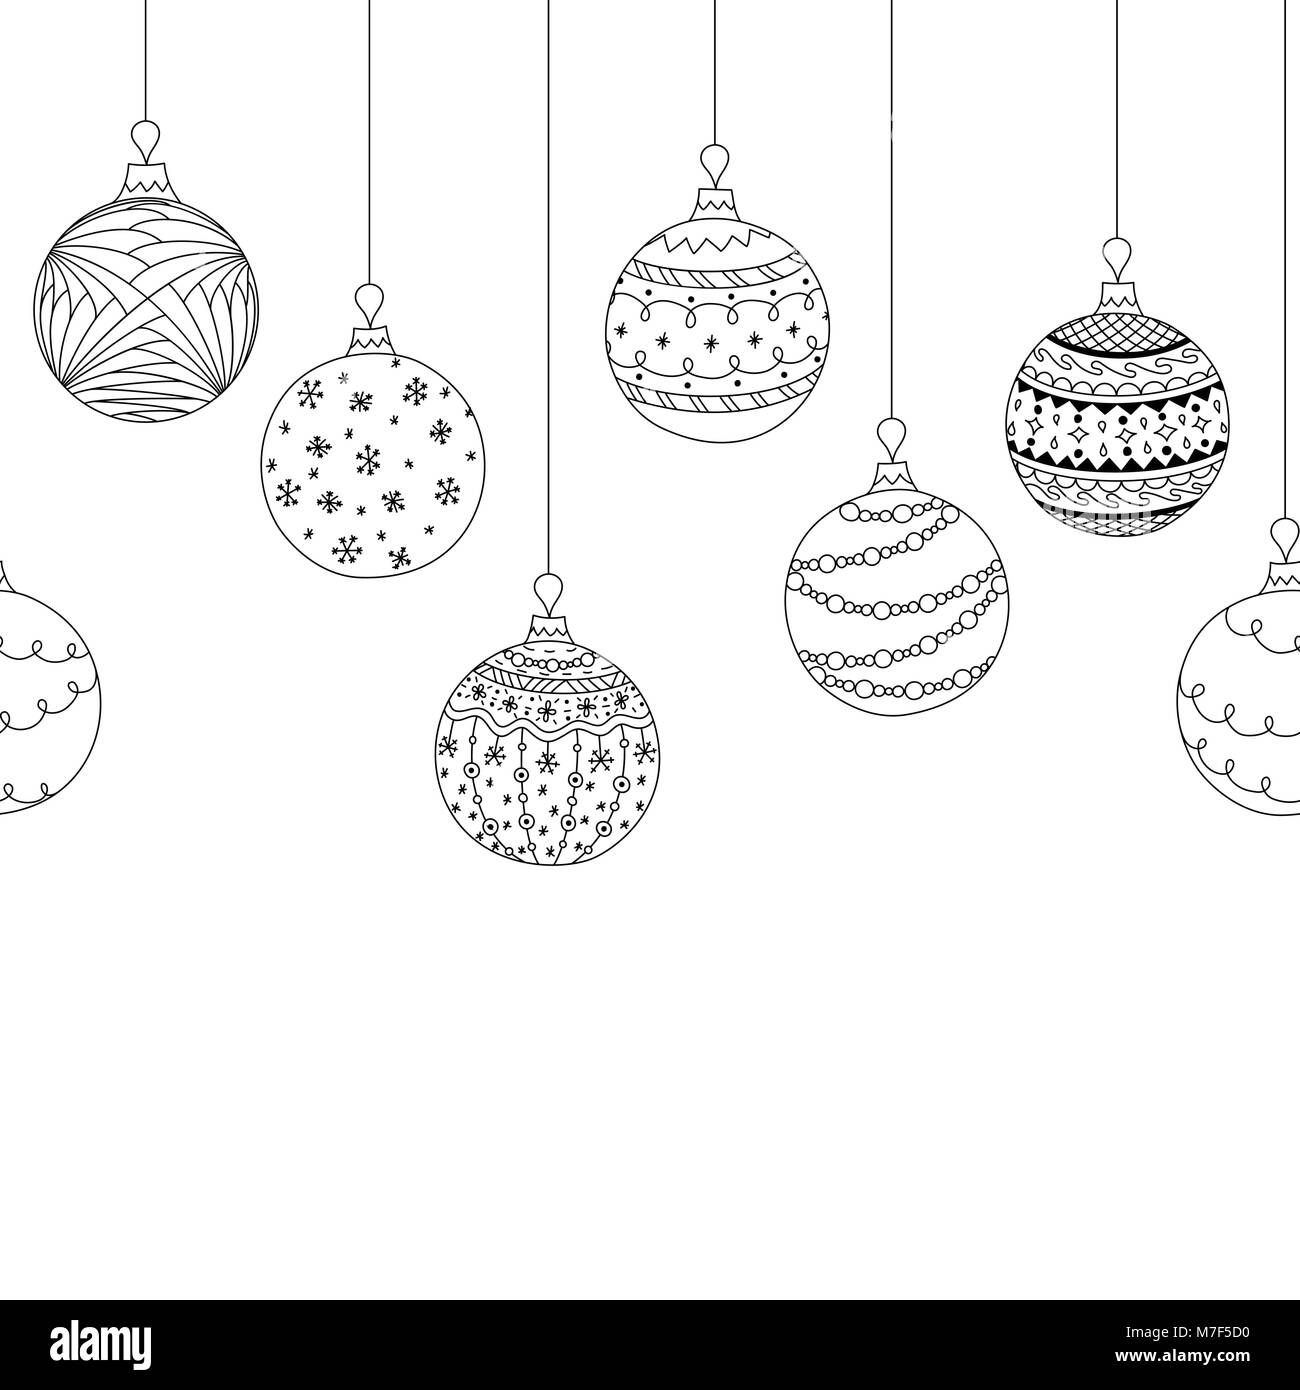 Vector Seamless Decorative Border From Hand Drawing Christmas Tree Ball Toys Greeting Invitation Background Coloring Page Book